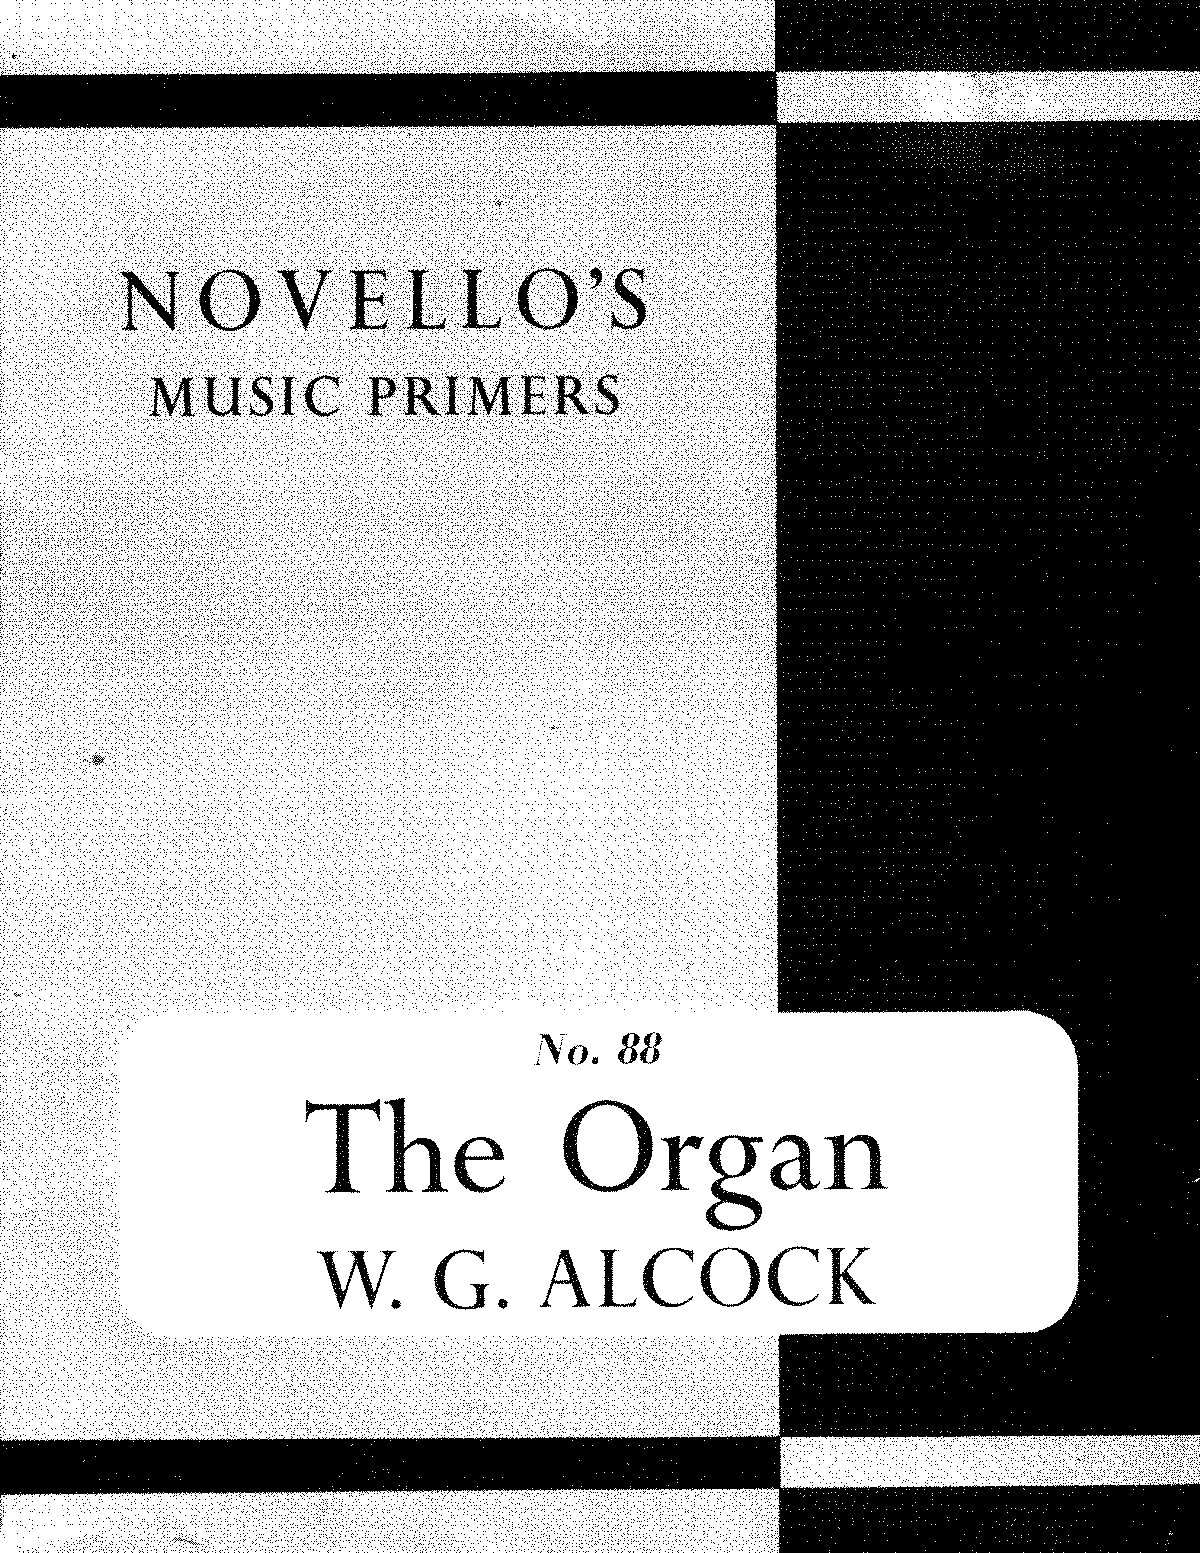 PMLP479693-Alcock The Organ.pdf